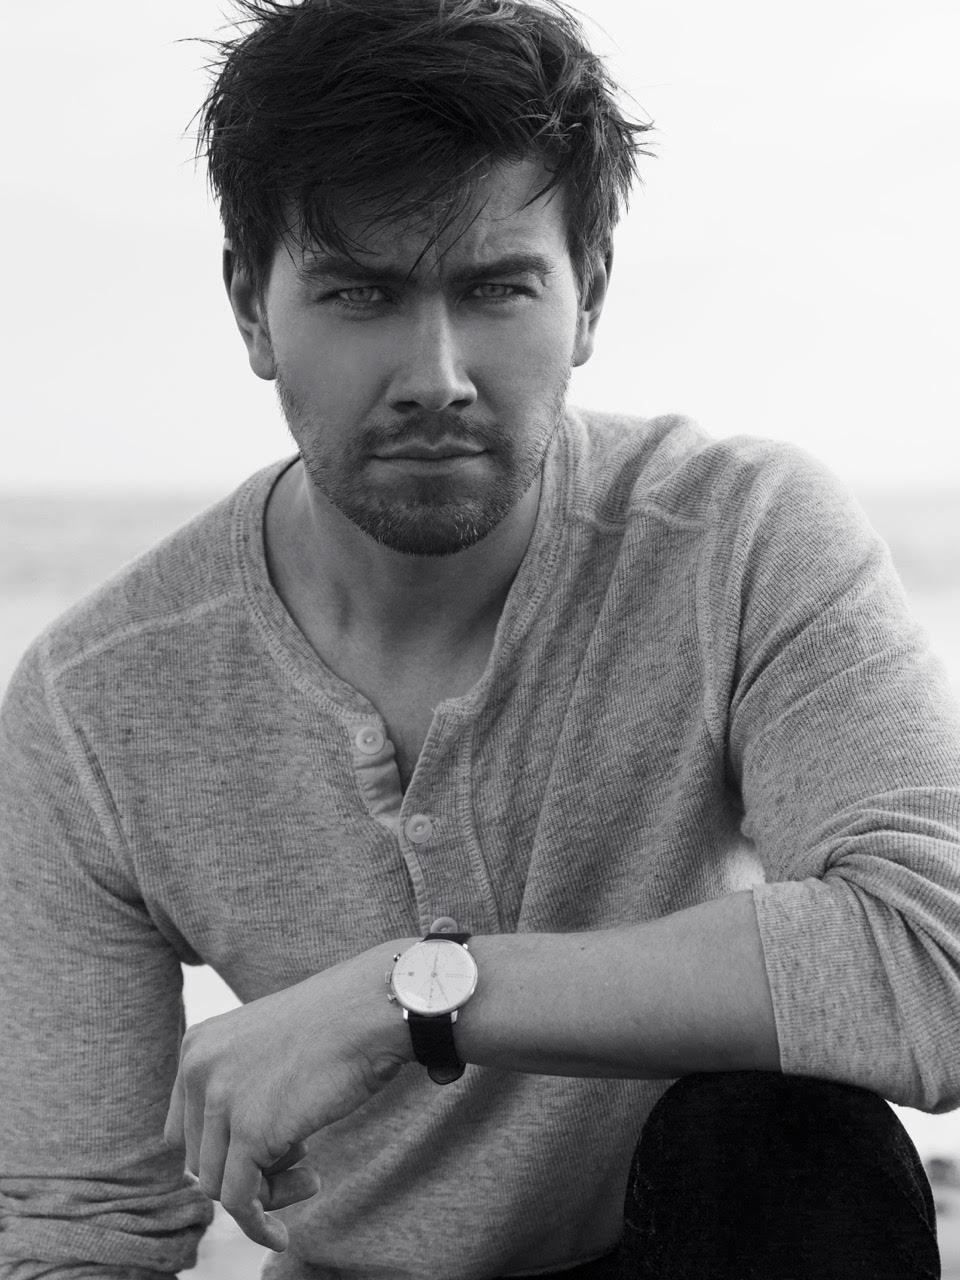 Torrance Coombs I may have found my new celebrity crush